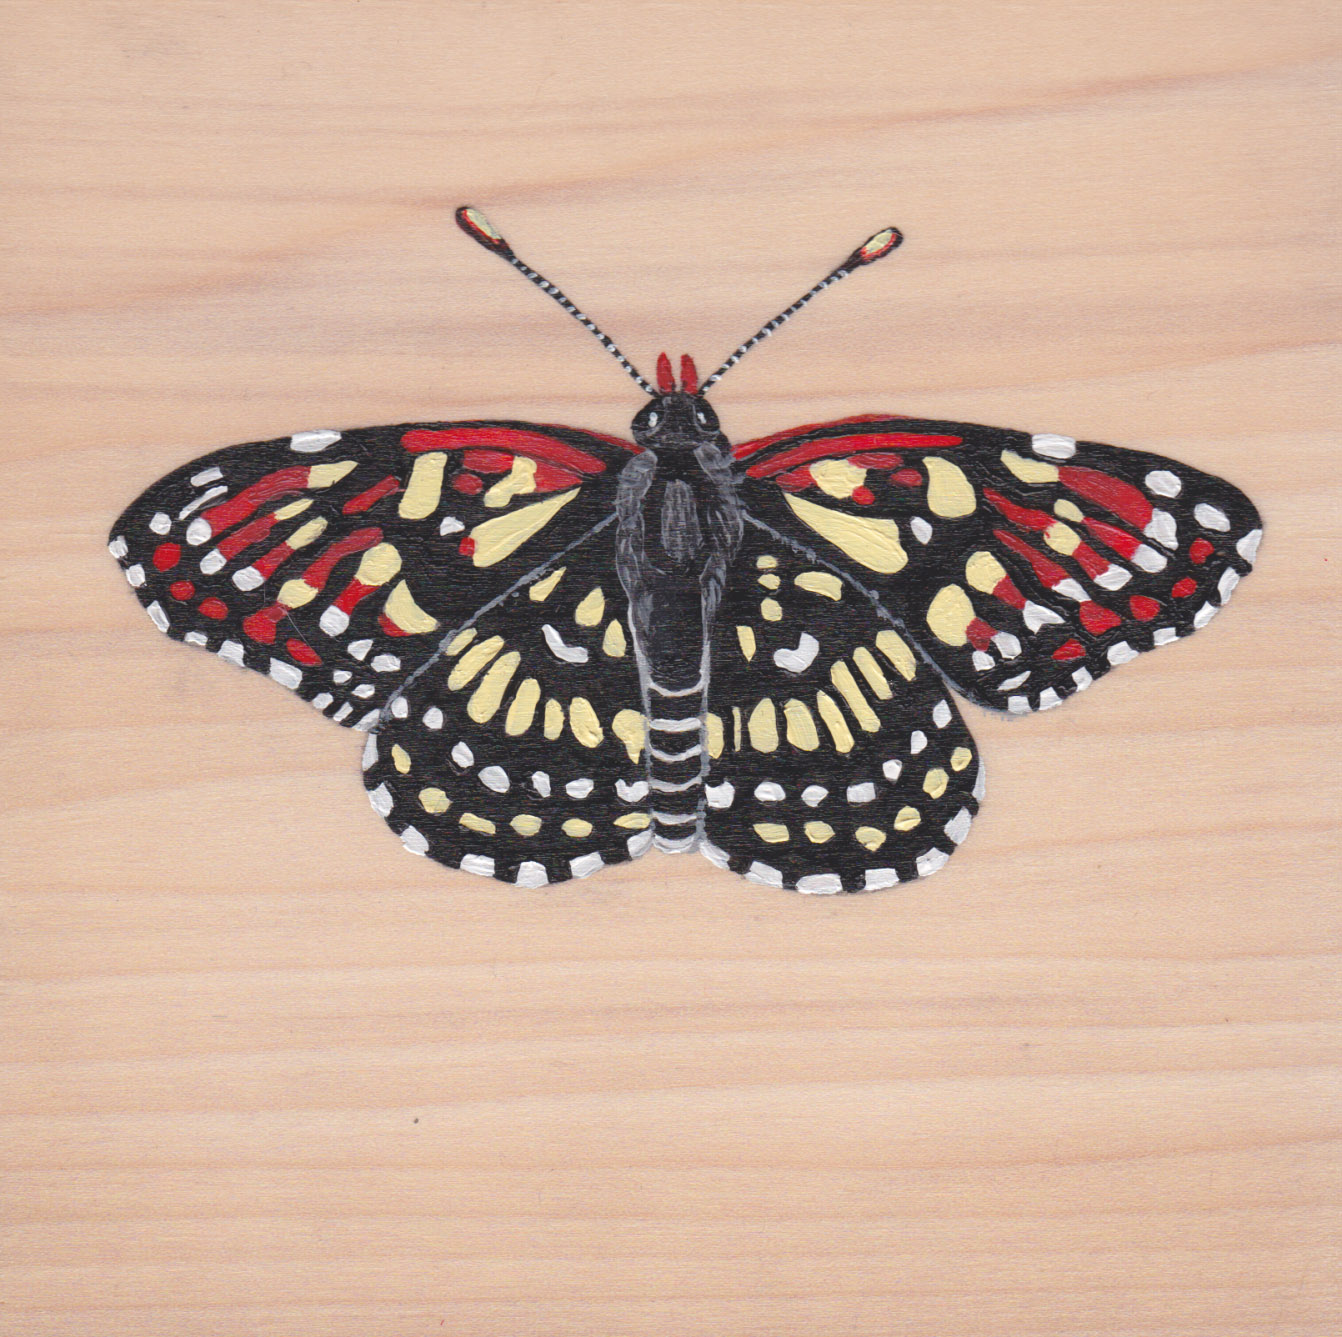 Chlosyne Leanira Wrightii Butterfly_Painting on wood_01.jpg